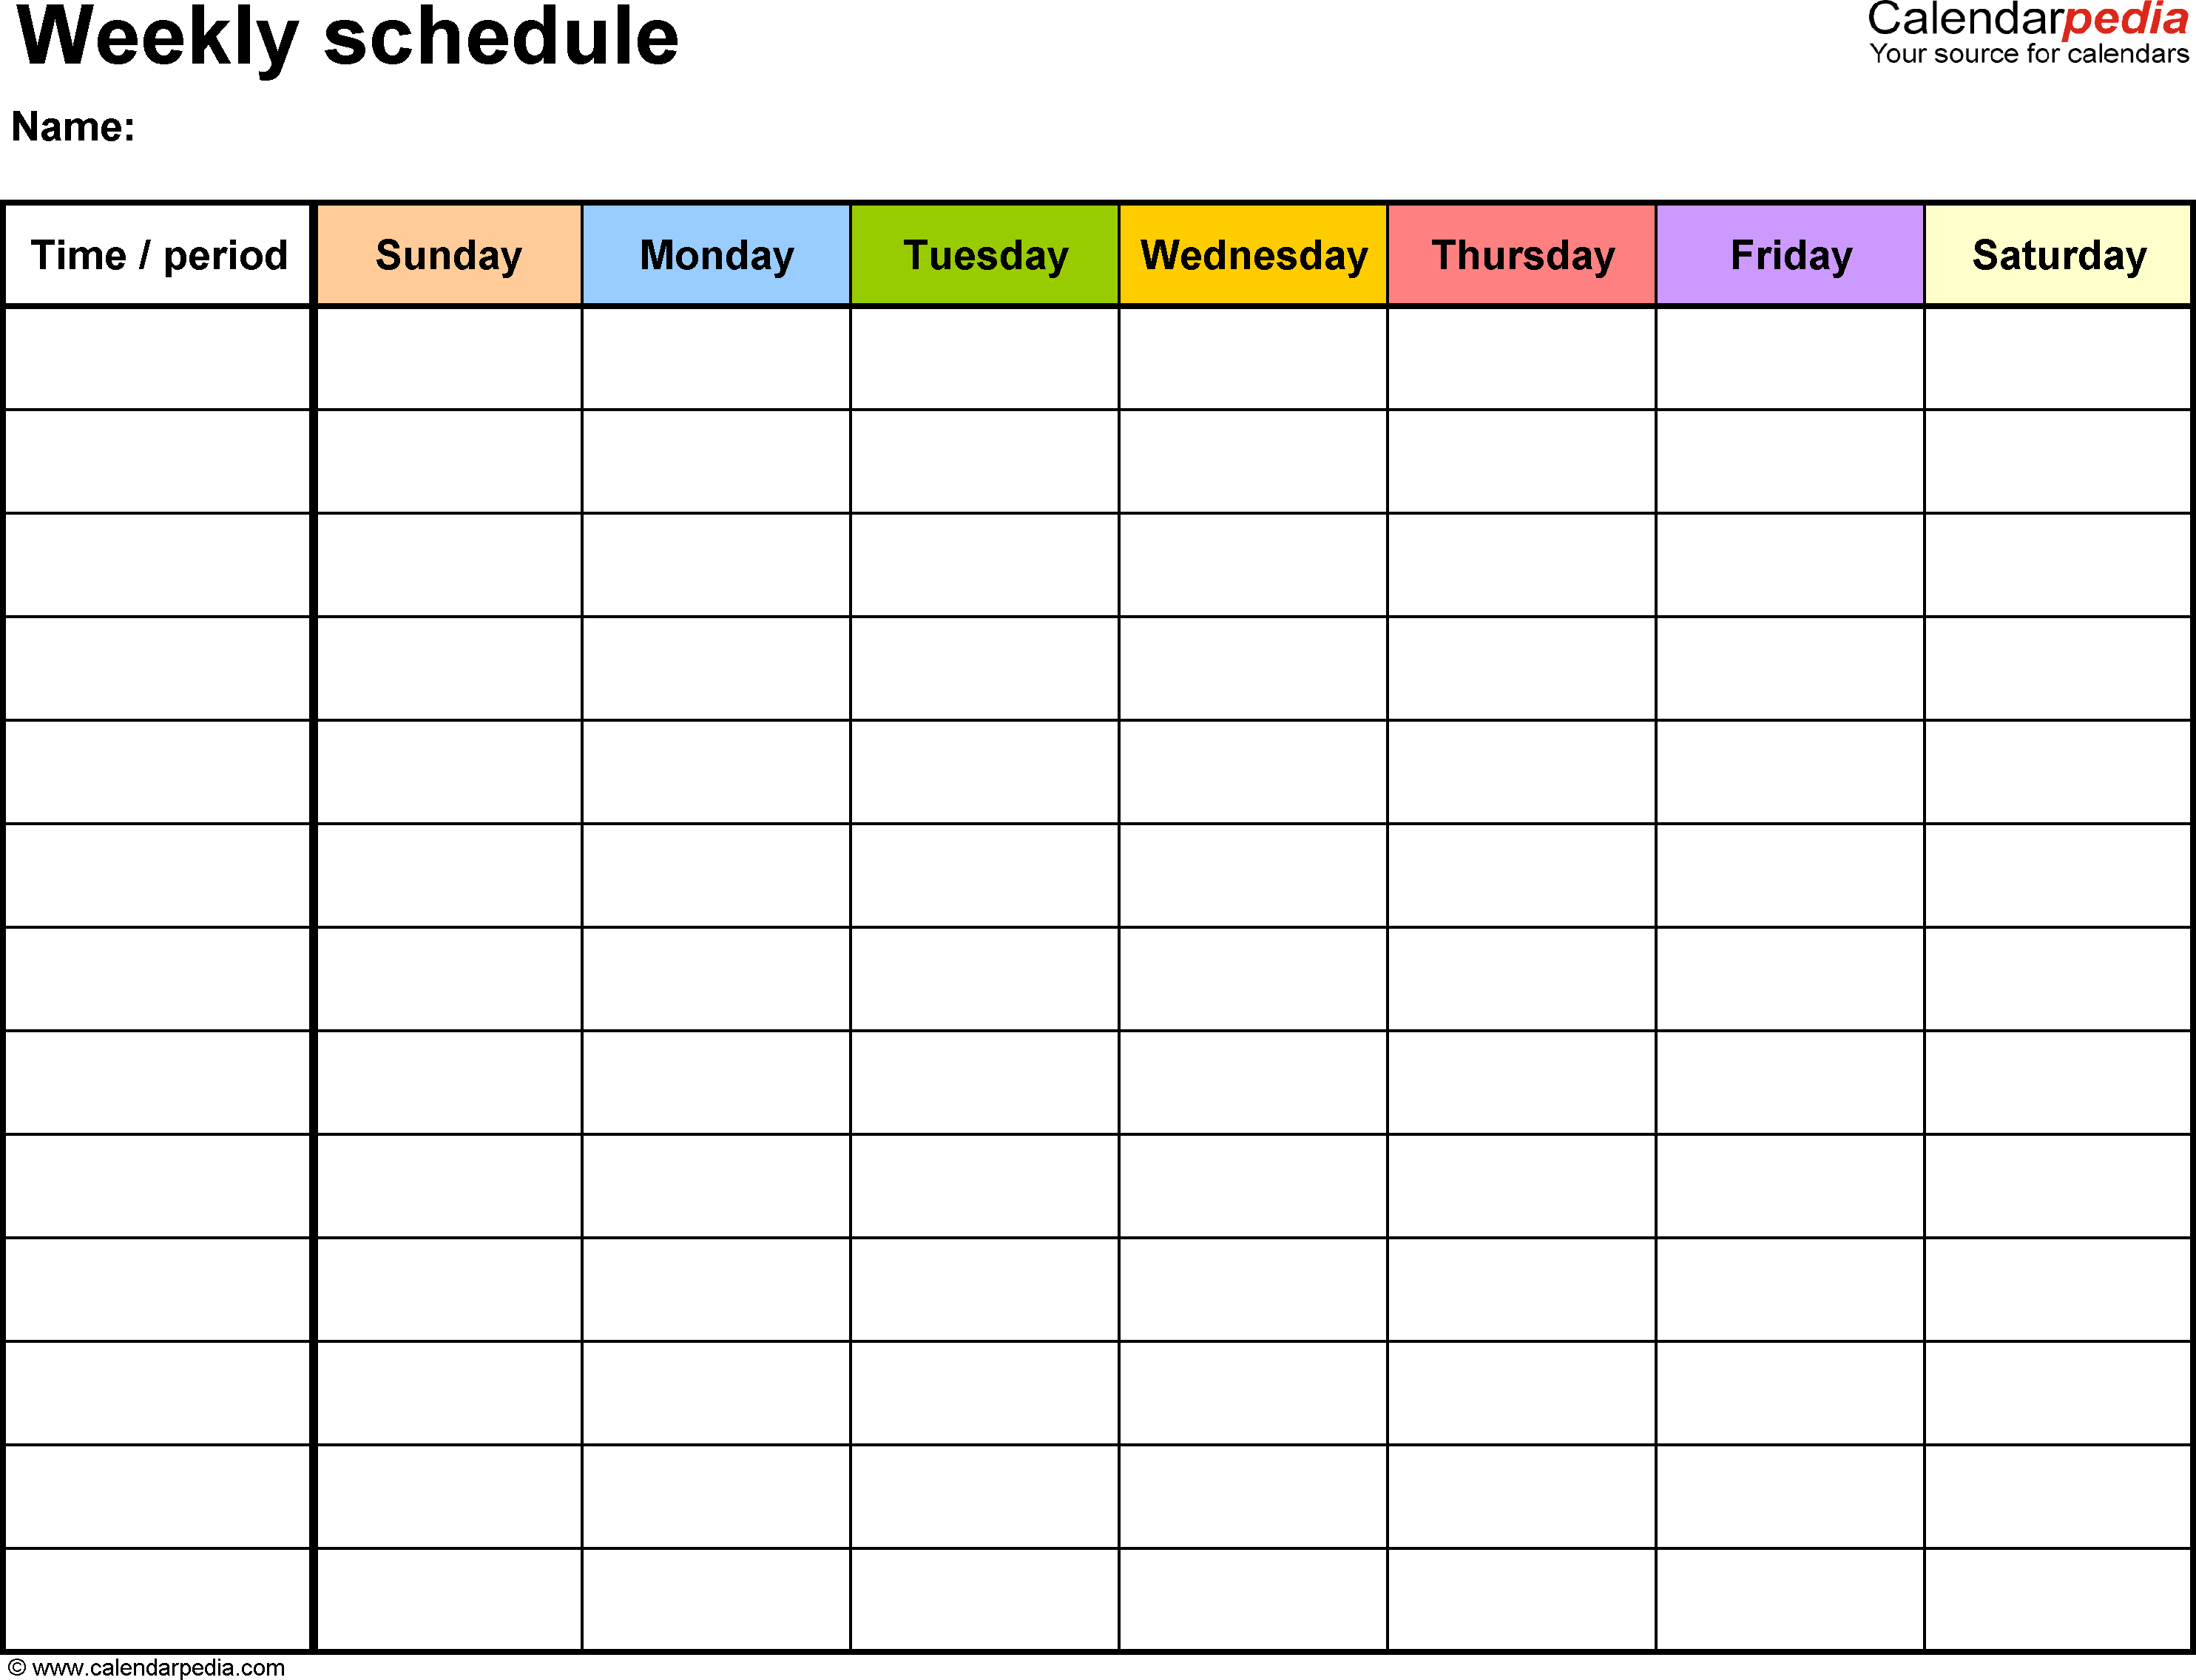 week schedule print out